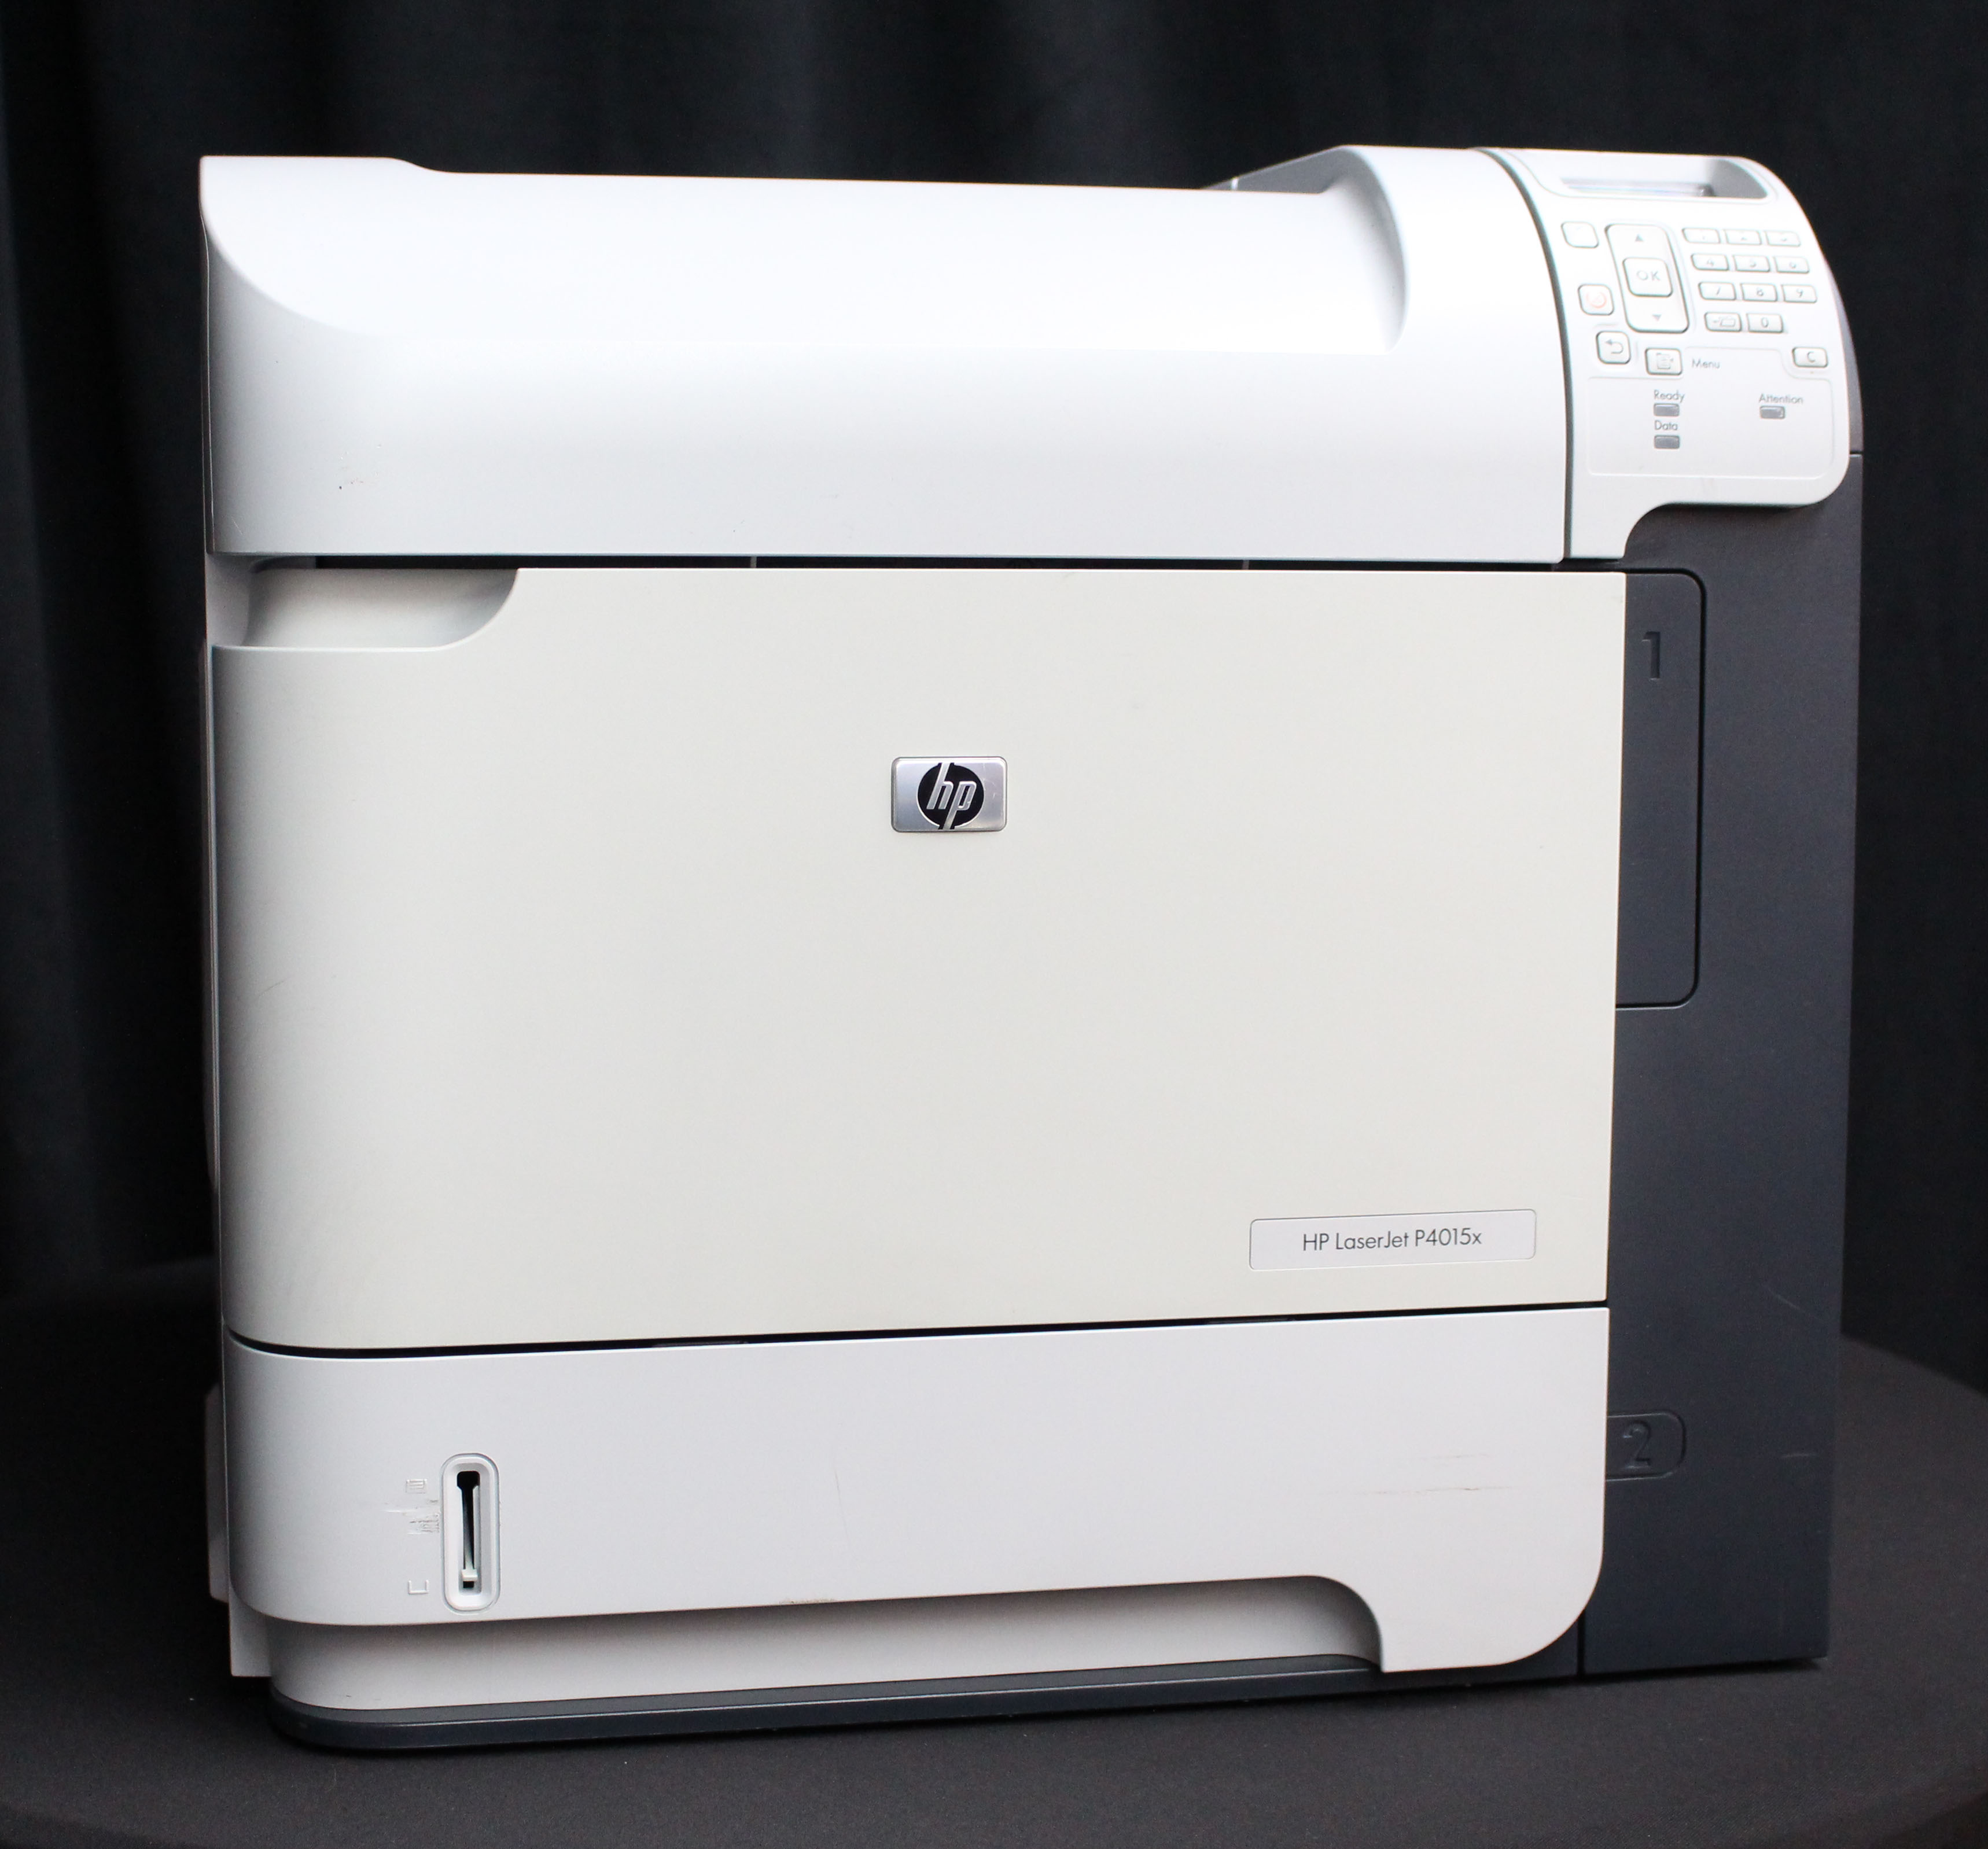 HP LASERJET P4015 PRINTER